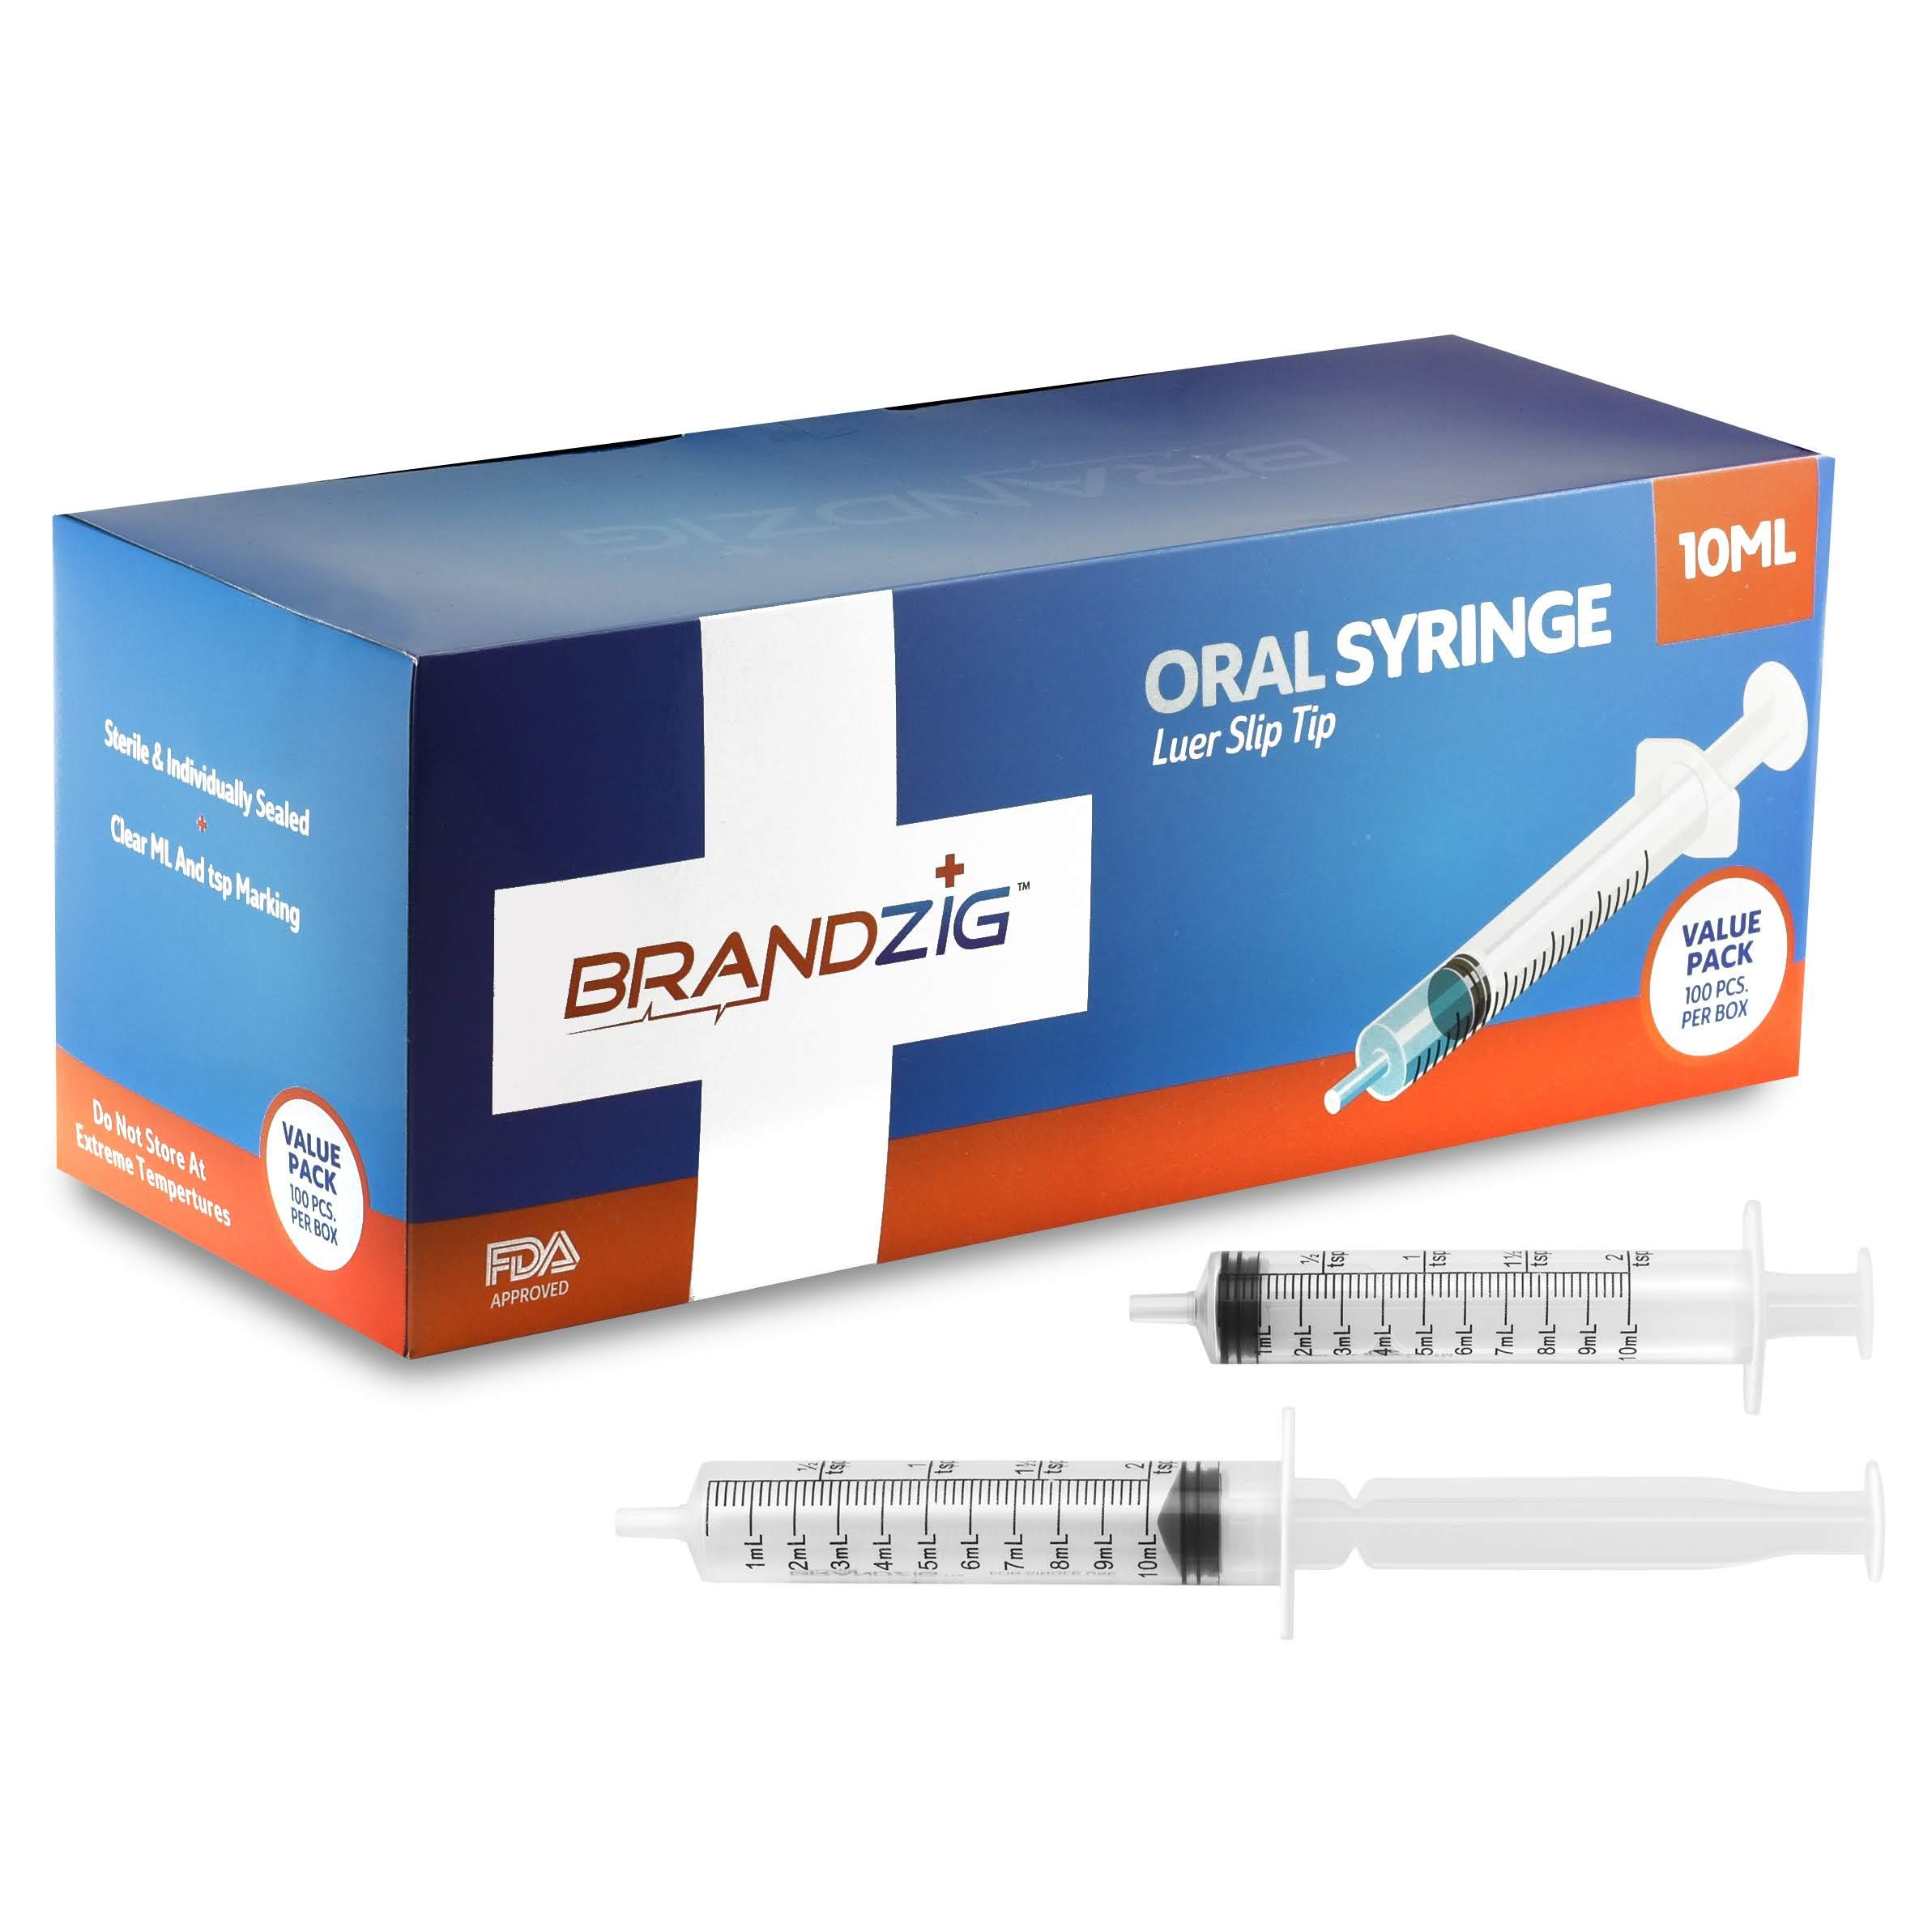 10ml Oral Syringes - 100 Pack - Luer Slip Tip, No Needle, FDA Approved, Individually Blister Packed - Medicine Administration for Infants, Toddlers and Small Pets (No Cover)